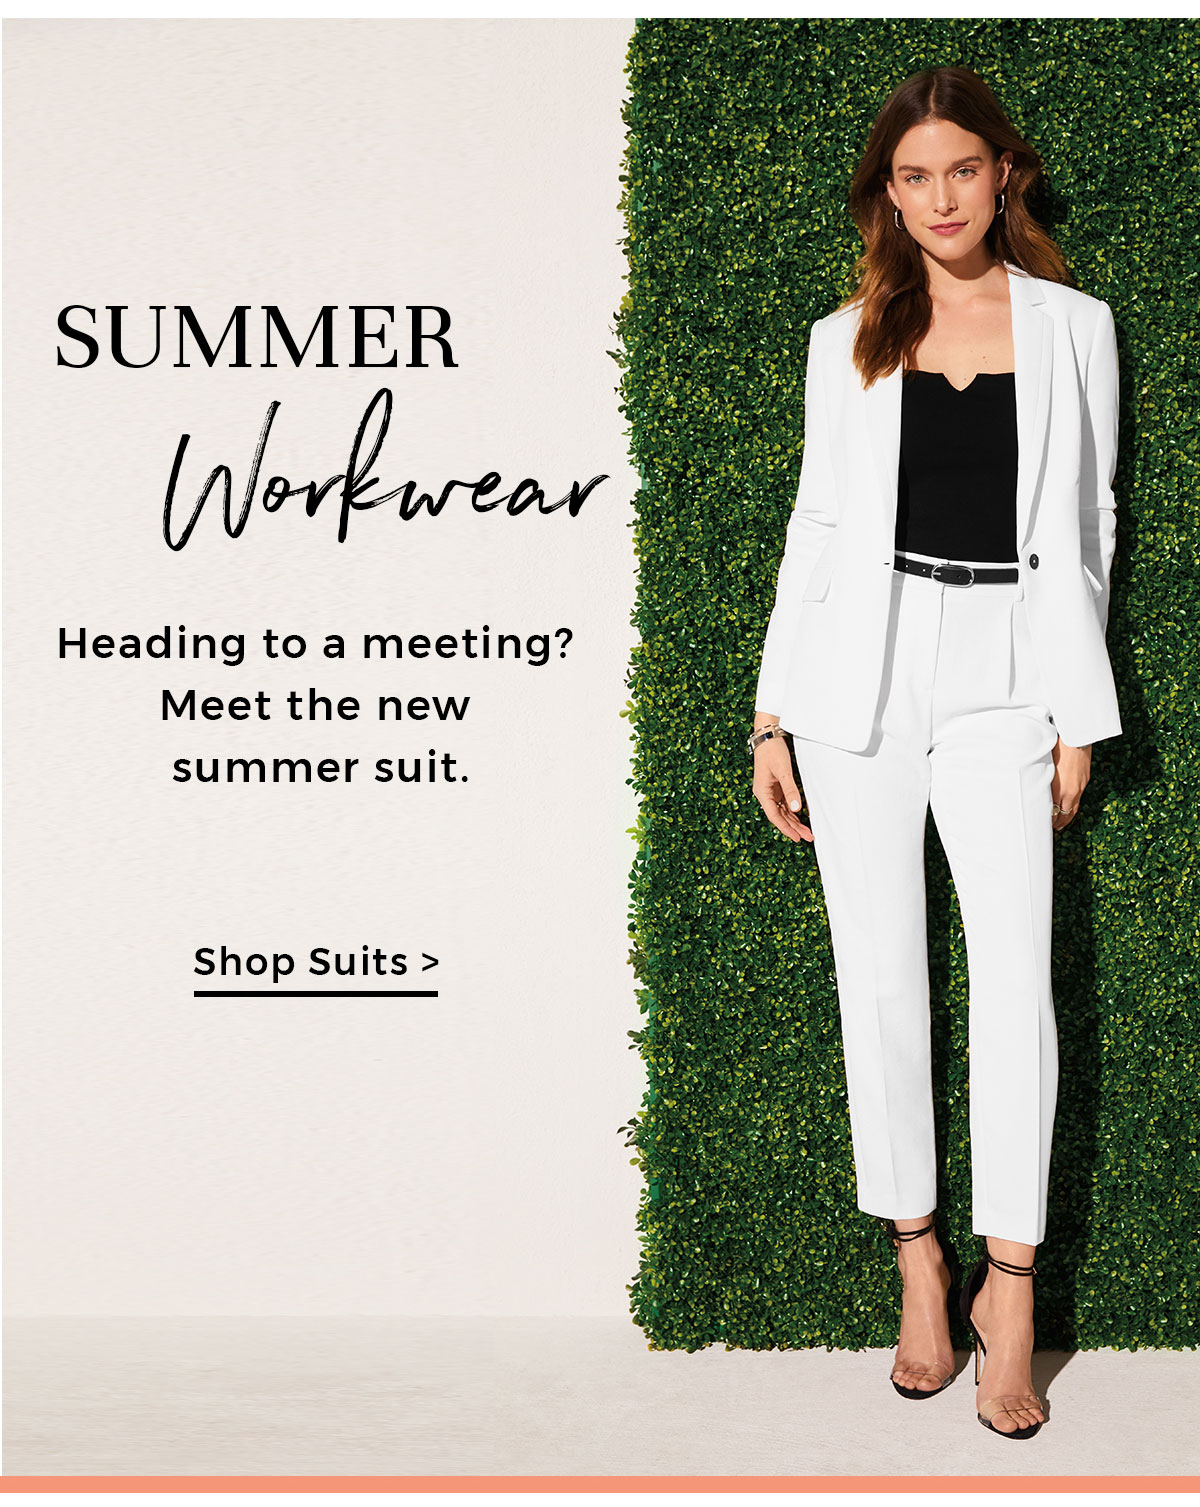 Summer Workwear CTA: Shop suits Heading to a meeting? Meet the new summer suit.